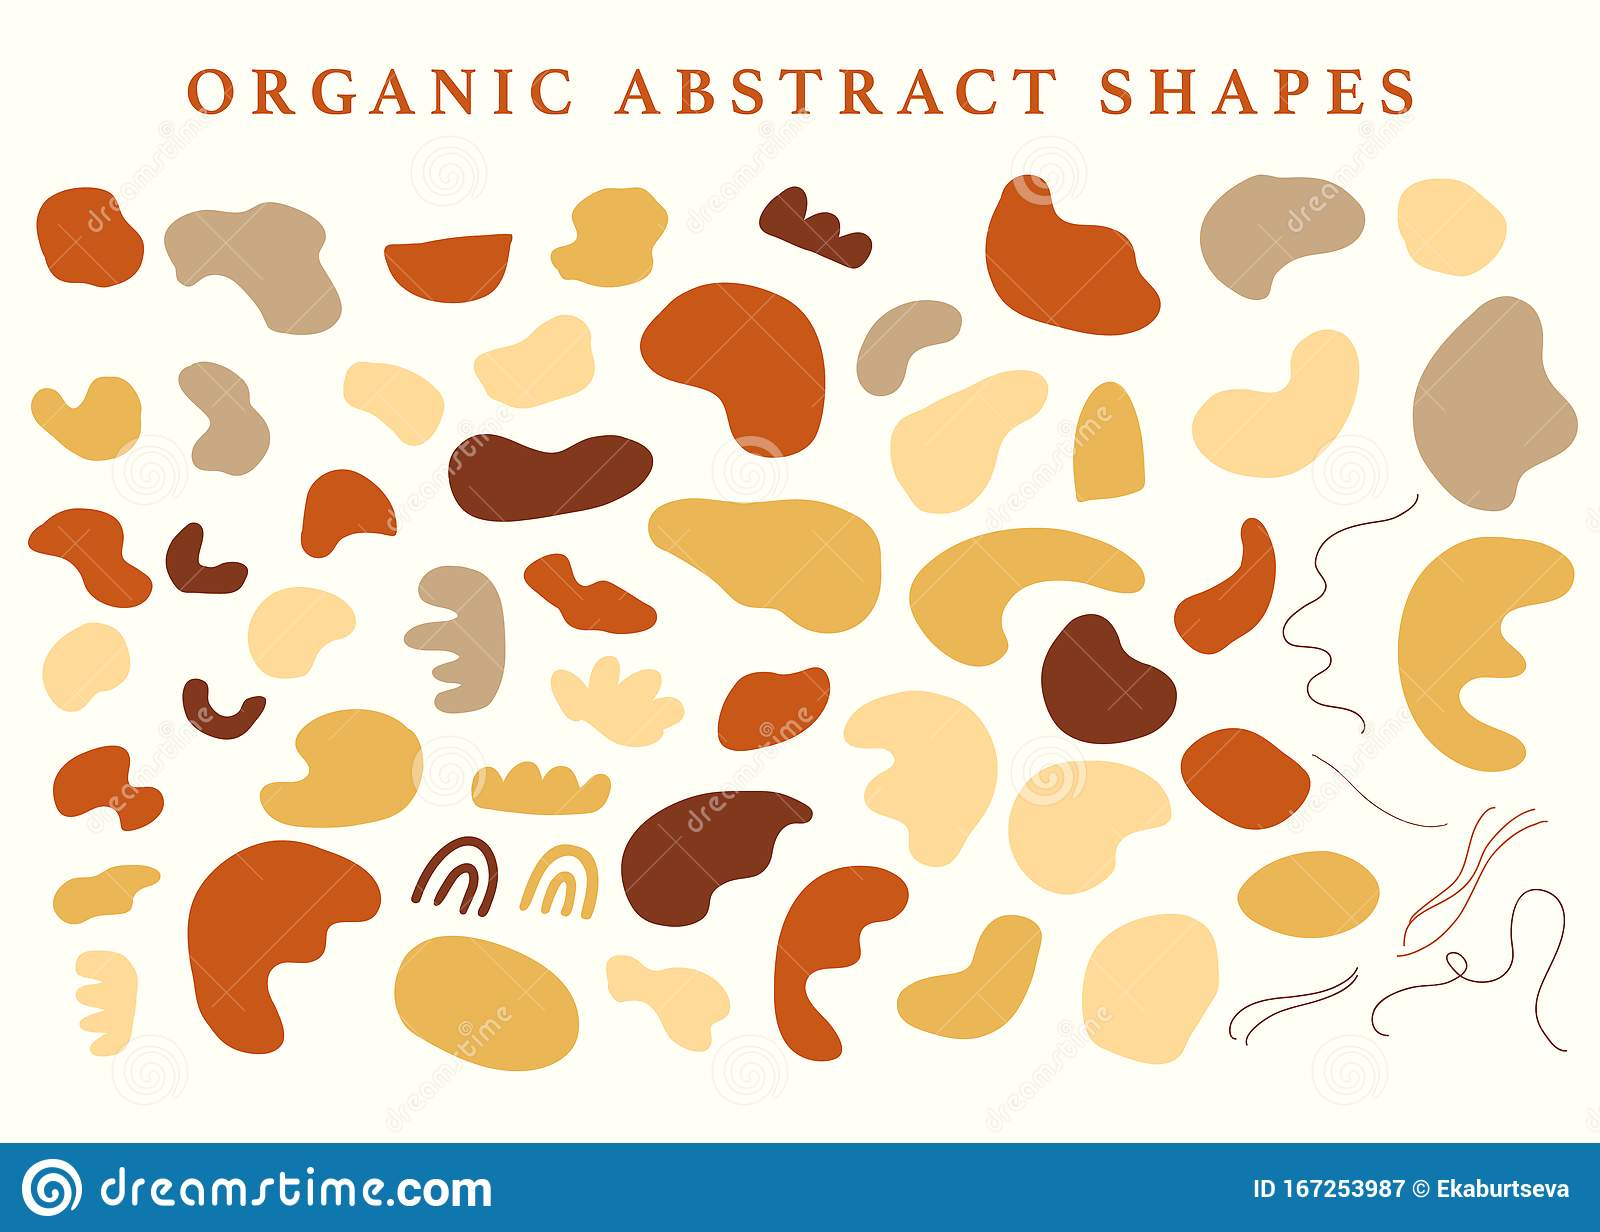 Abstraction Organic Shapes Set Stock Vector Illustration Of Design Layout 167253987